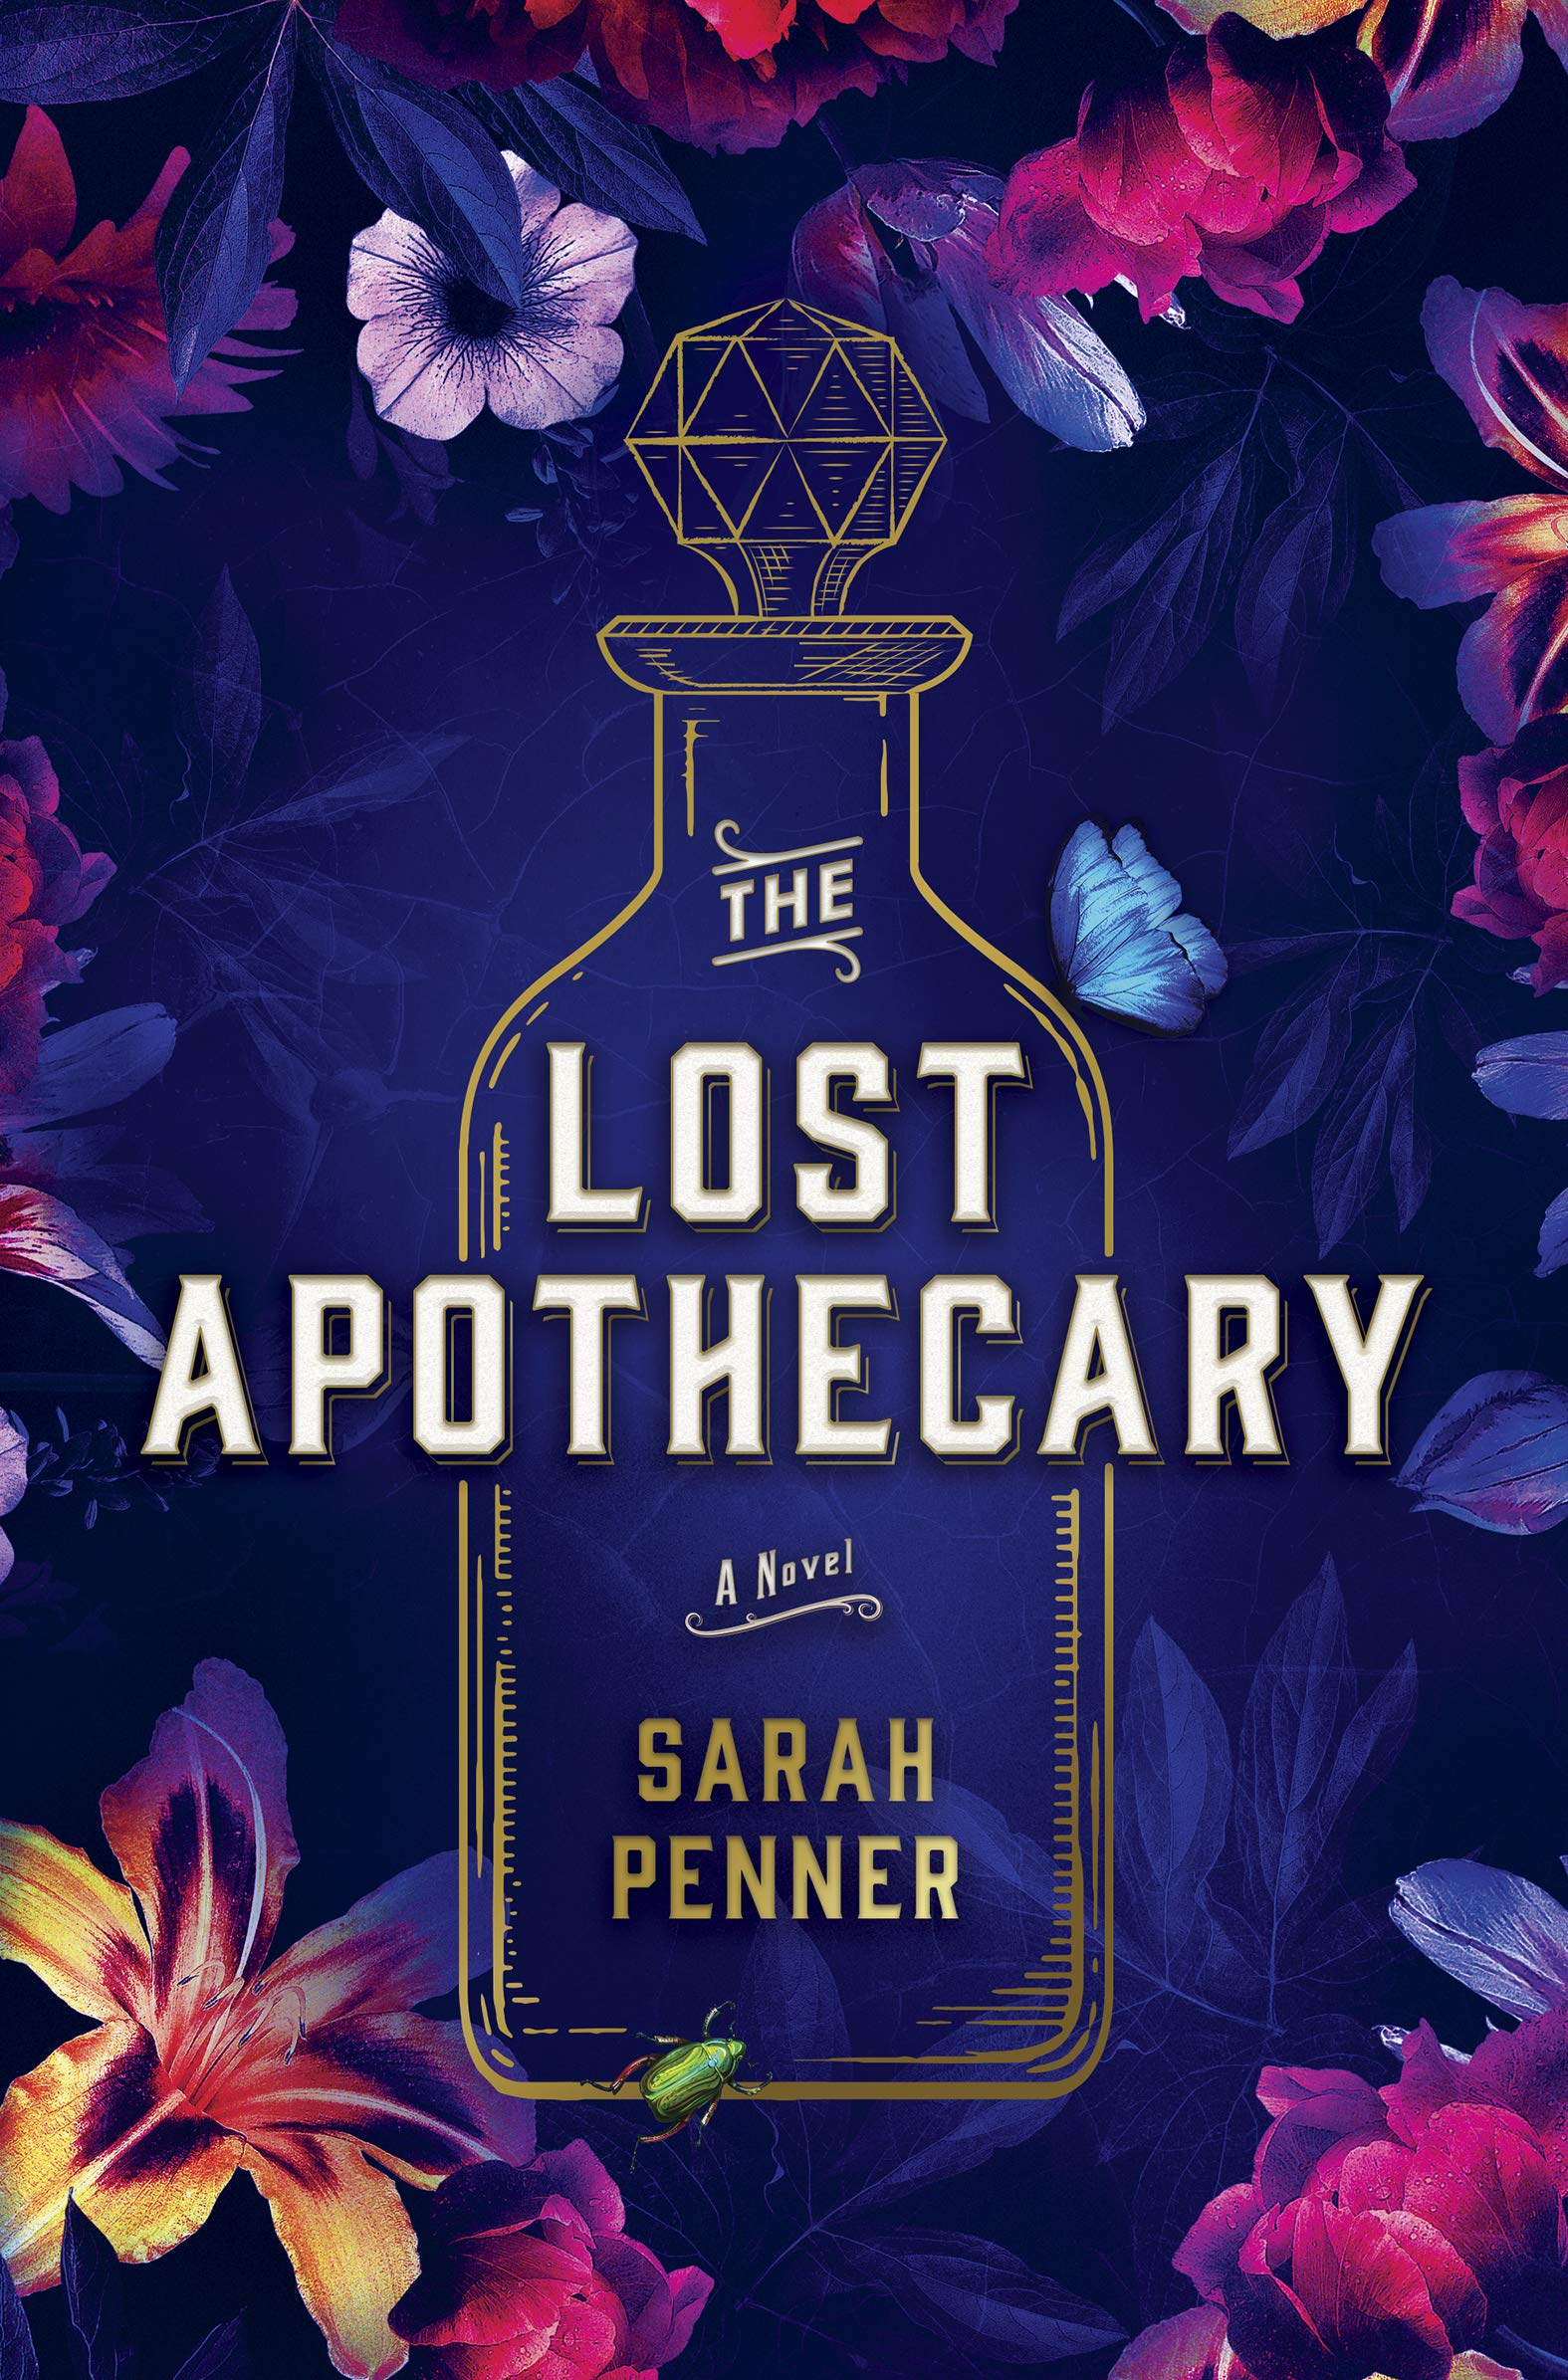 The Last Apothecary By Sarah Penner 2021